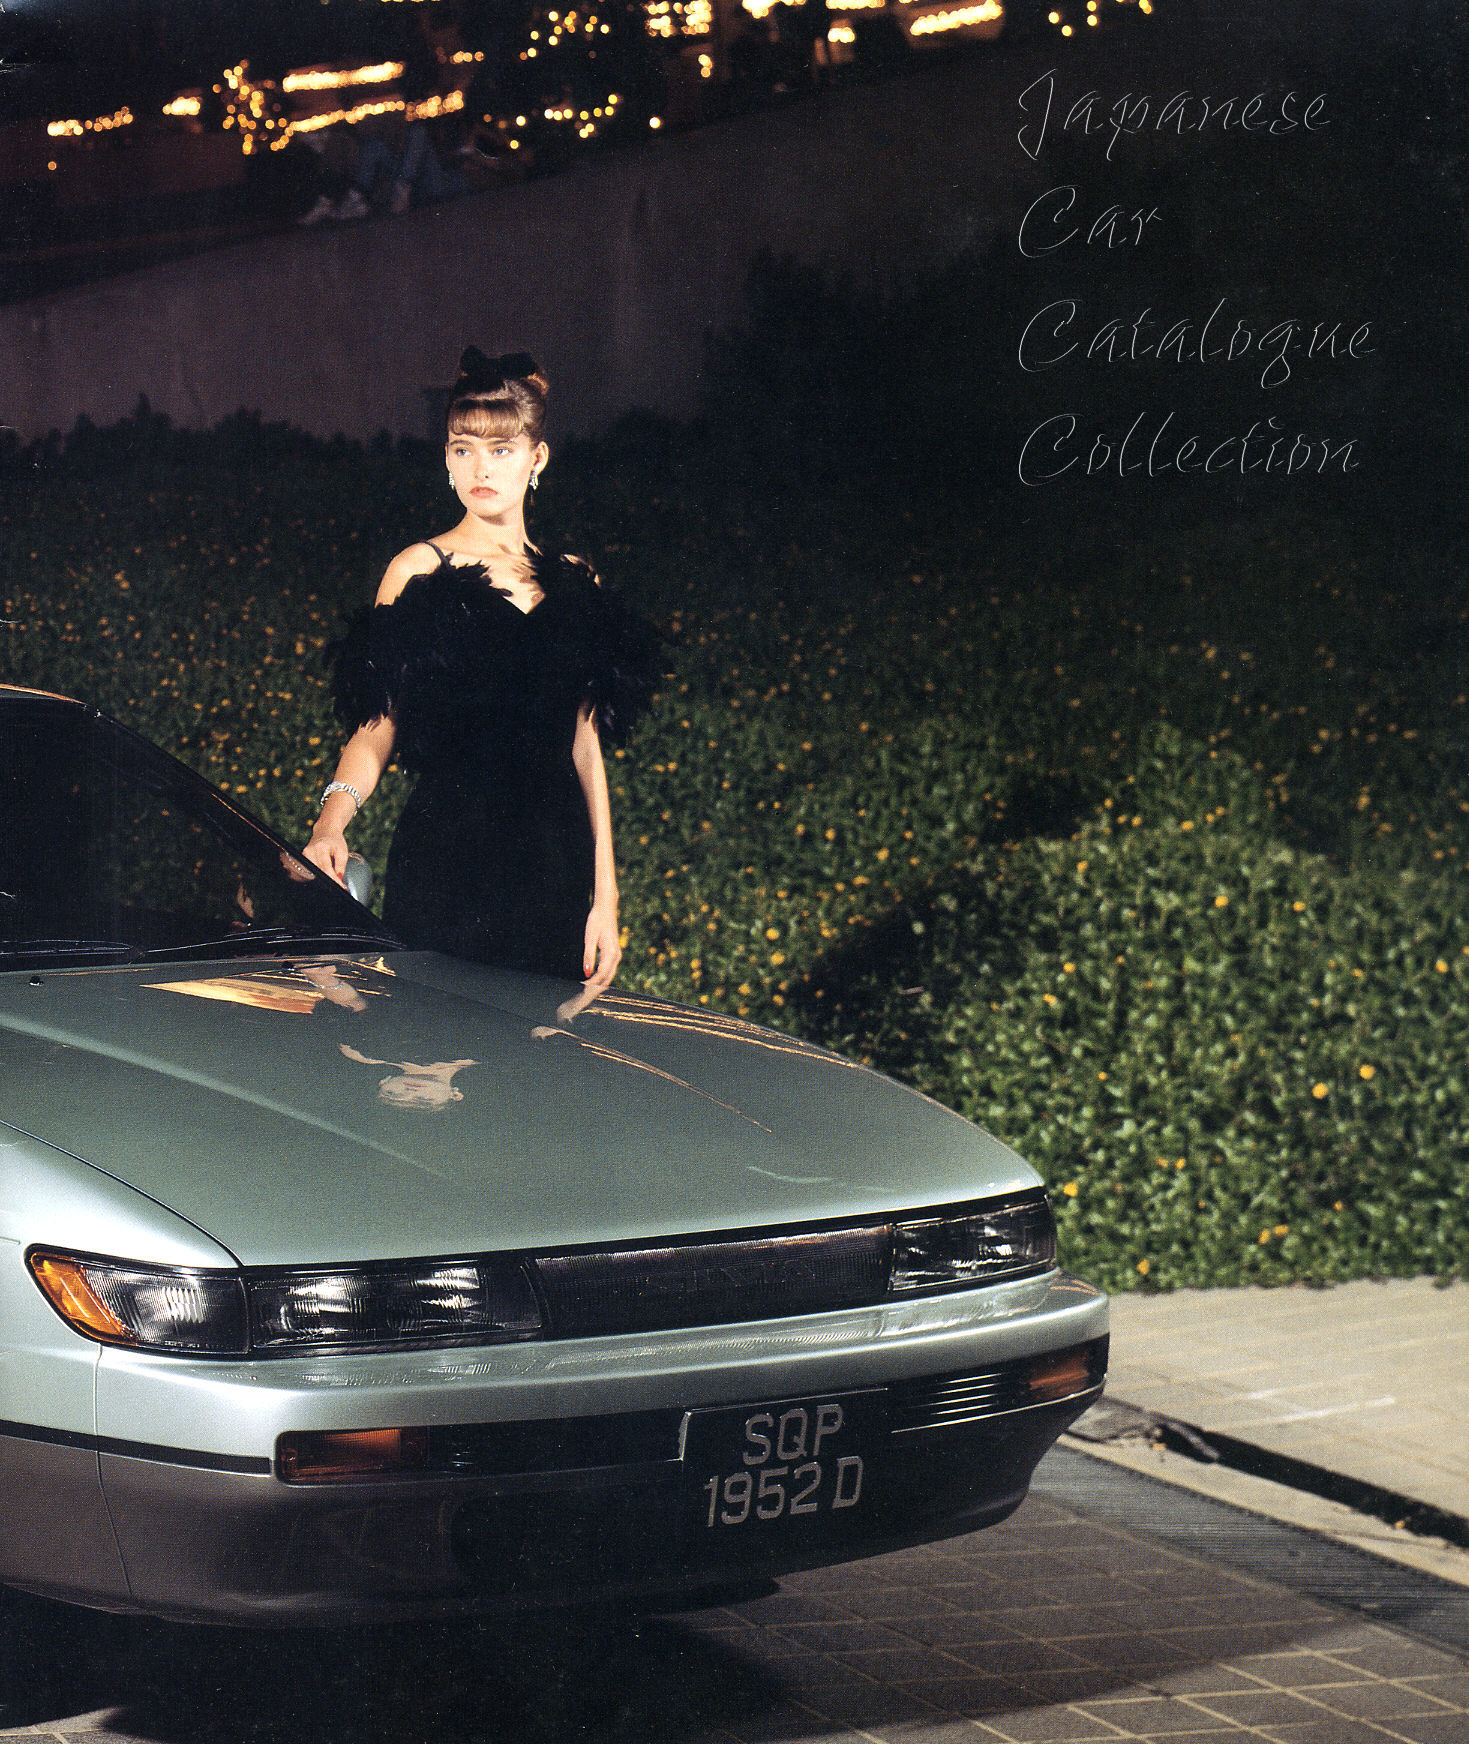 Show Me The Carfax >> S13 Silvia Original Dealer Brochure (Japan) - 240sx.org